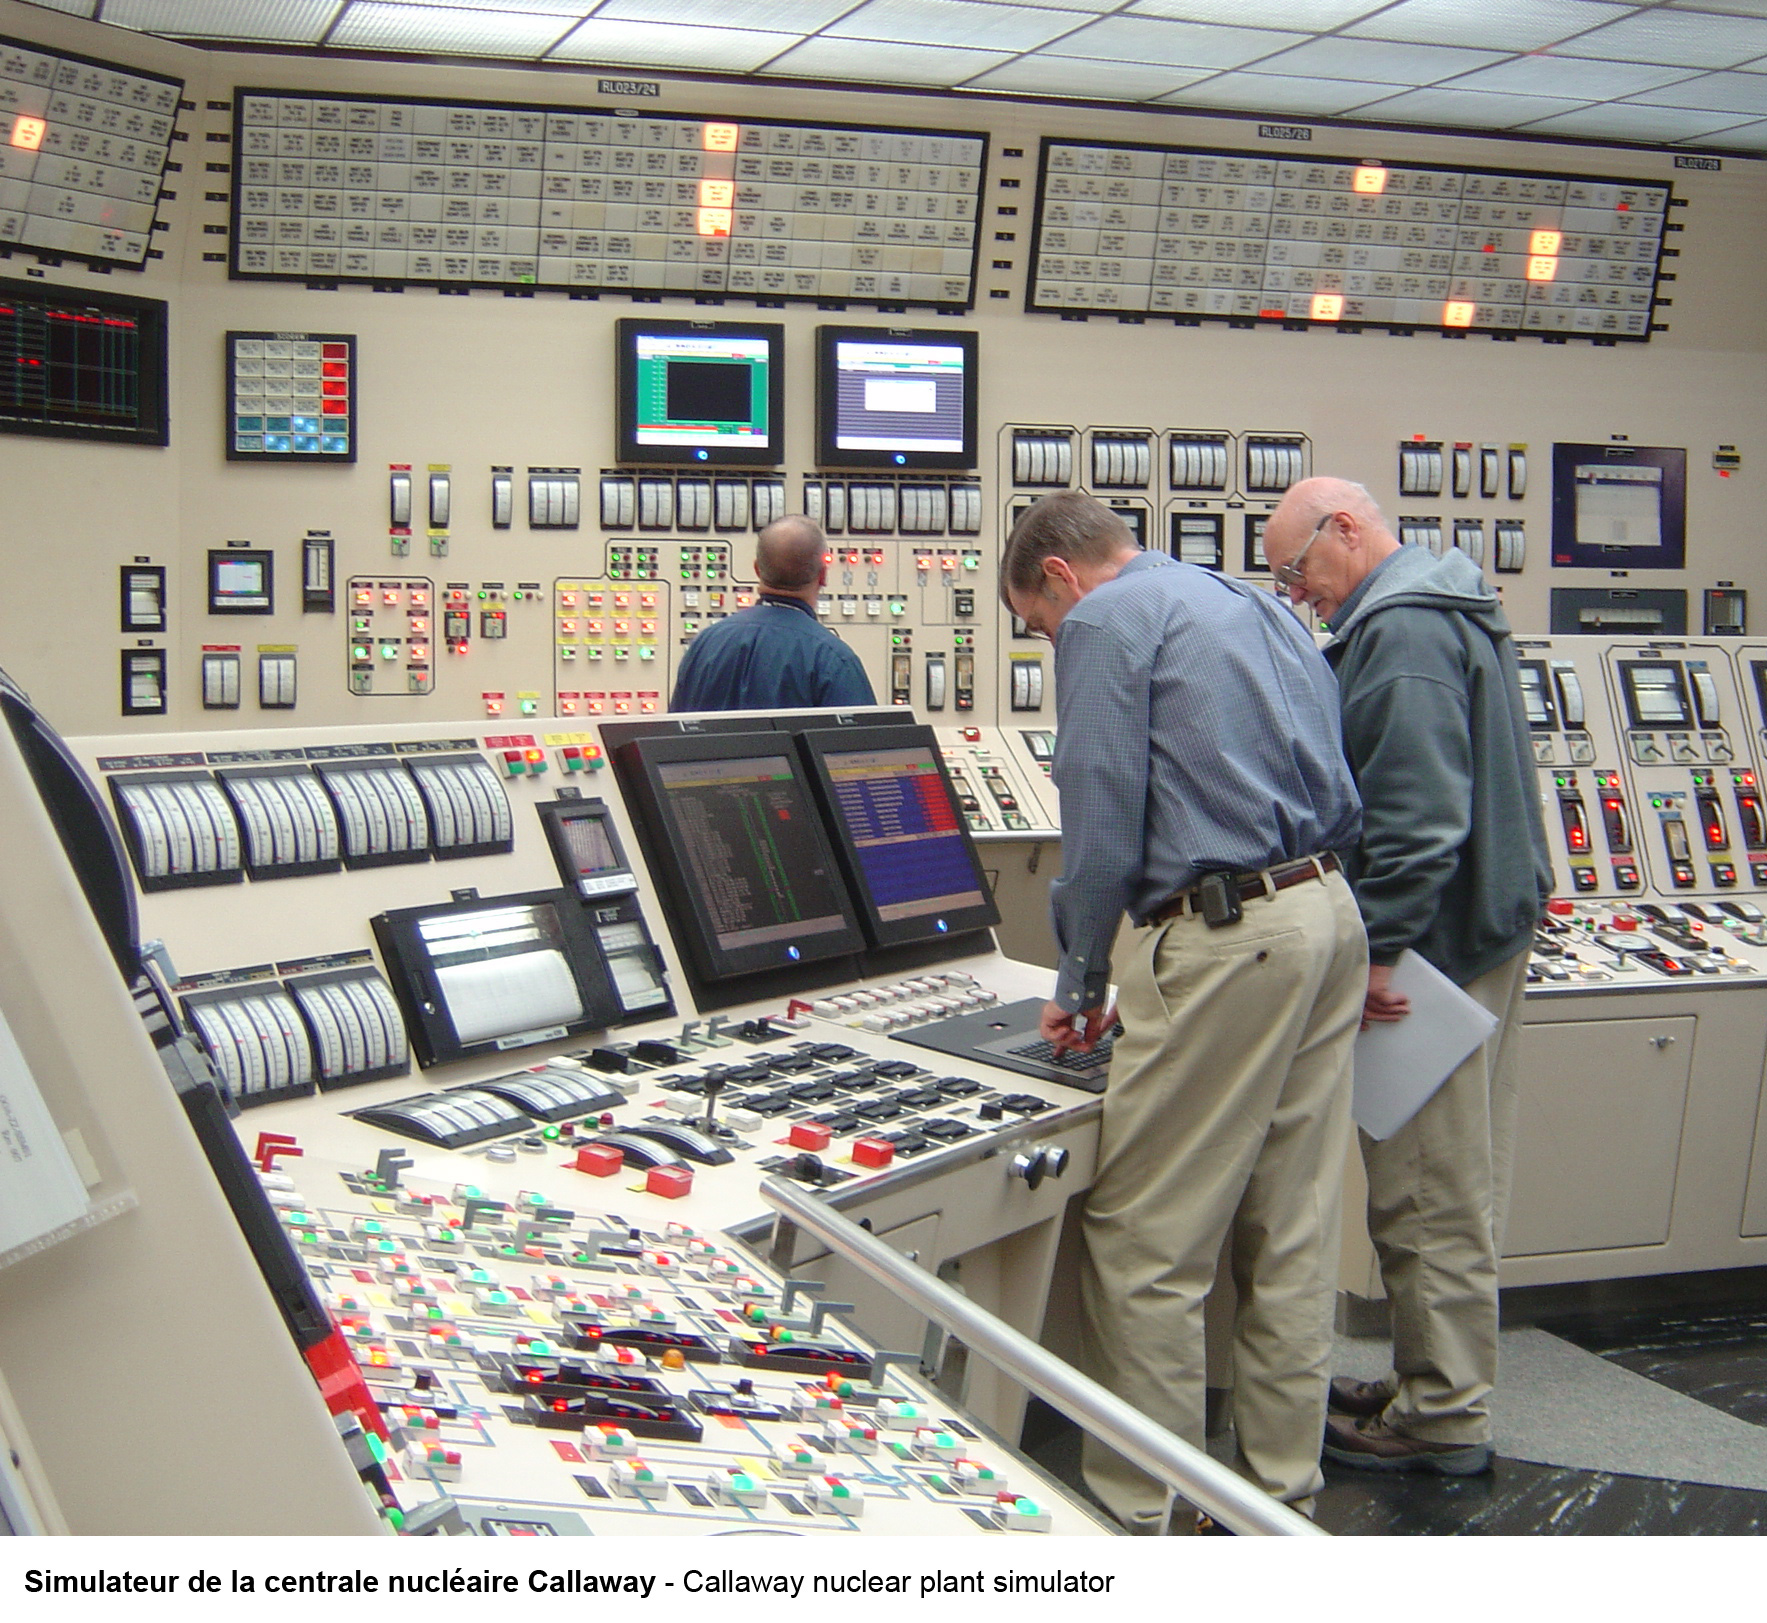 L 3 MAPPS To Upgrade Callaway Plant Simulator News Nuclear